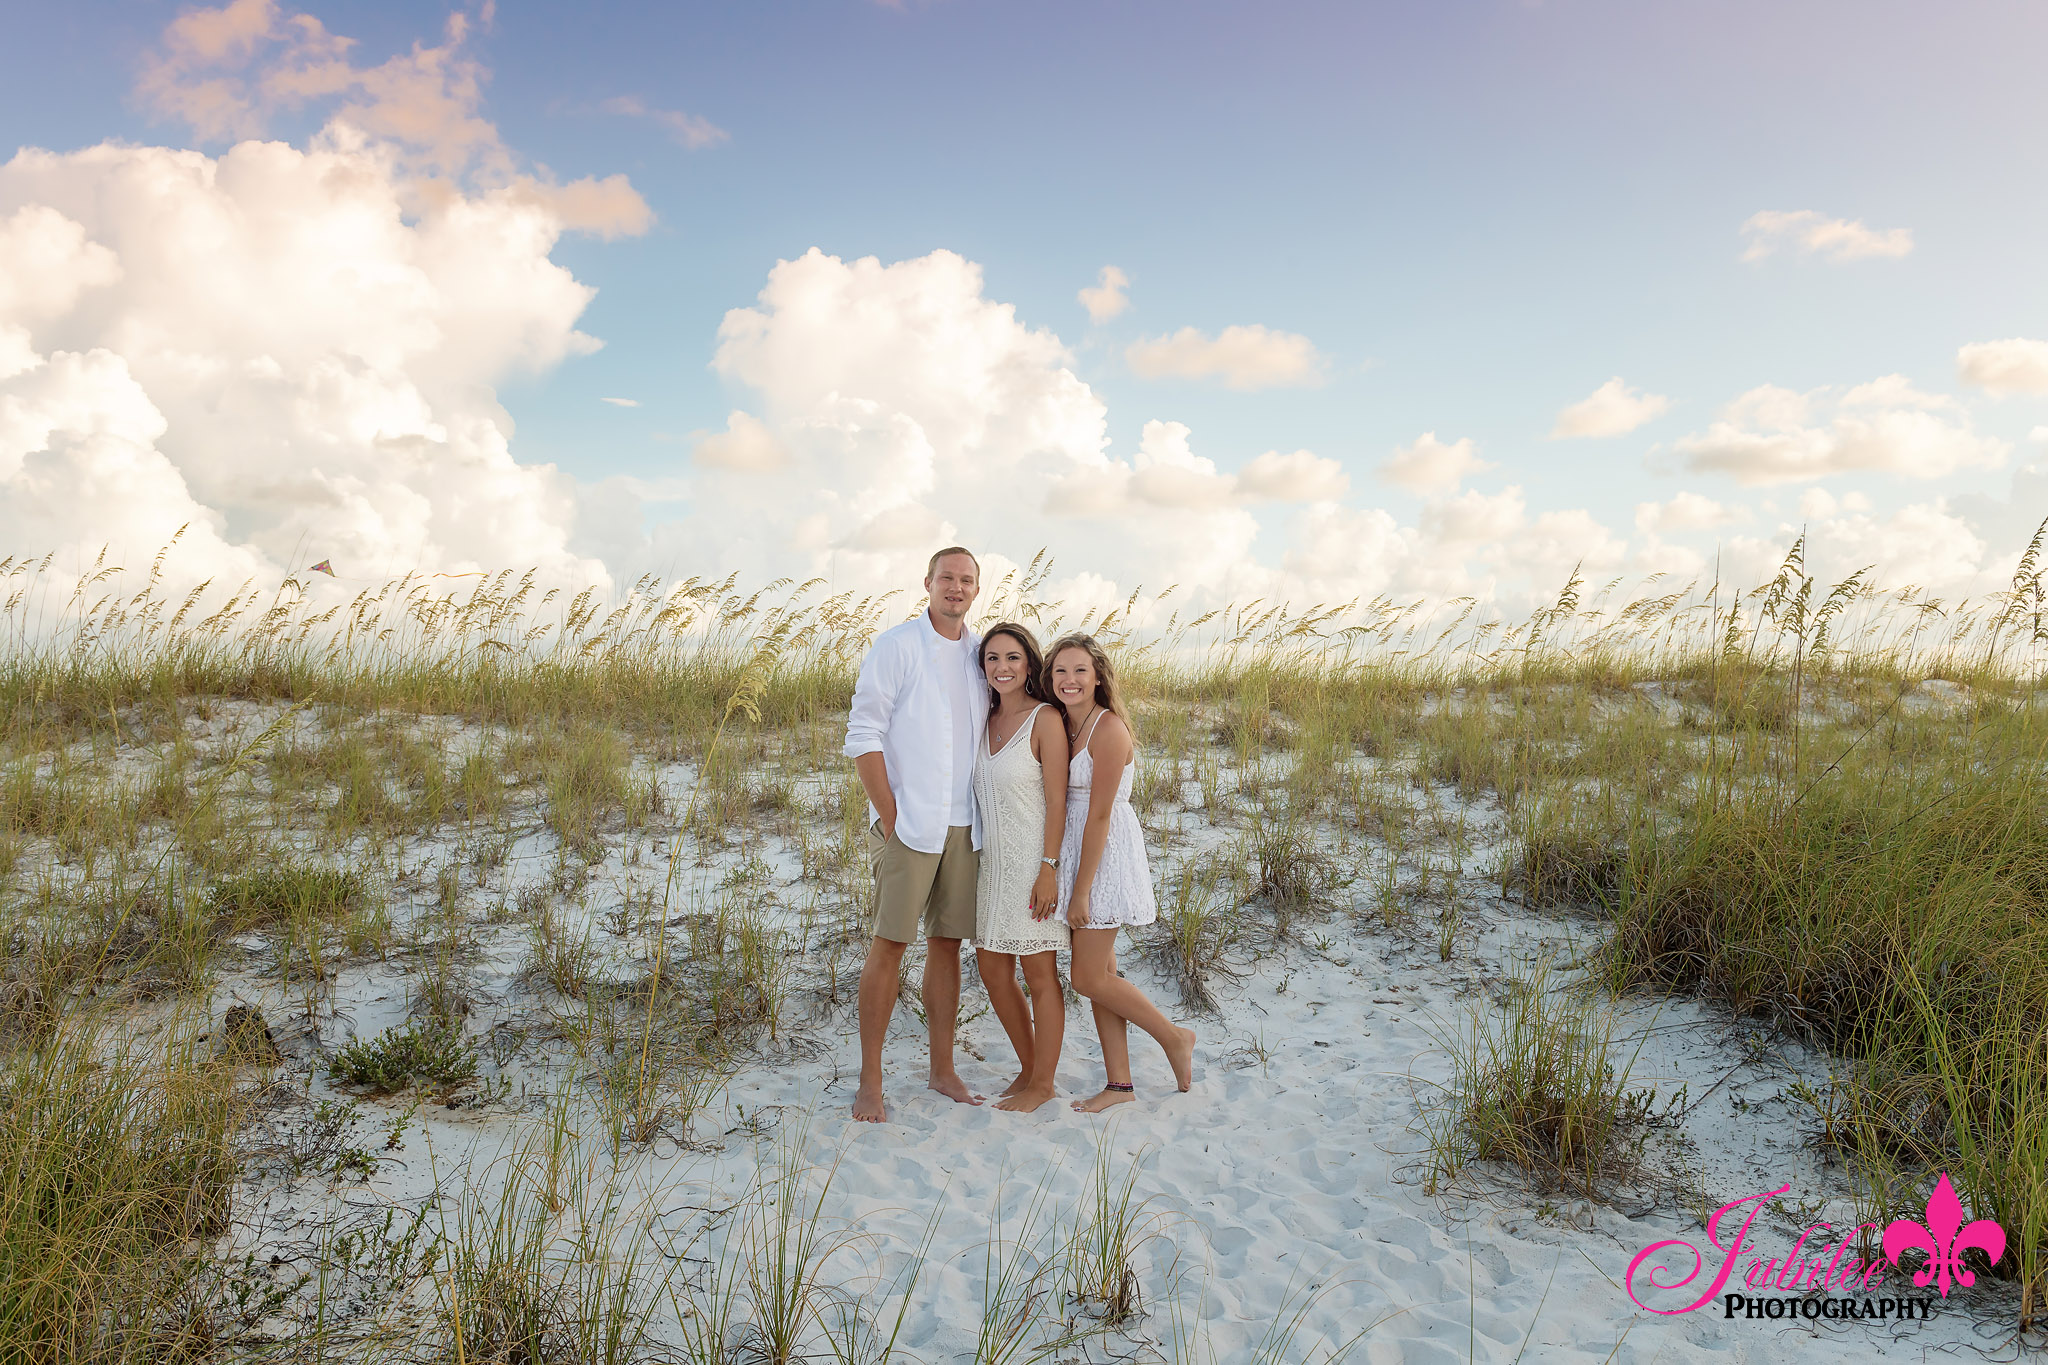 Destin_Photographer_8022